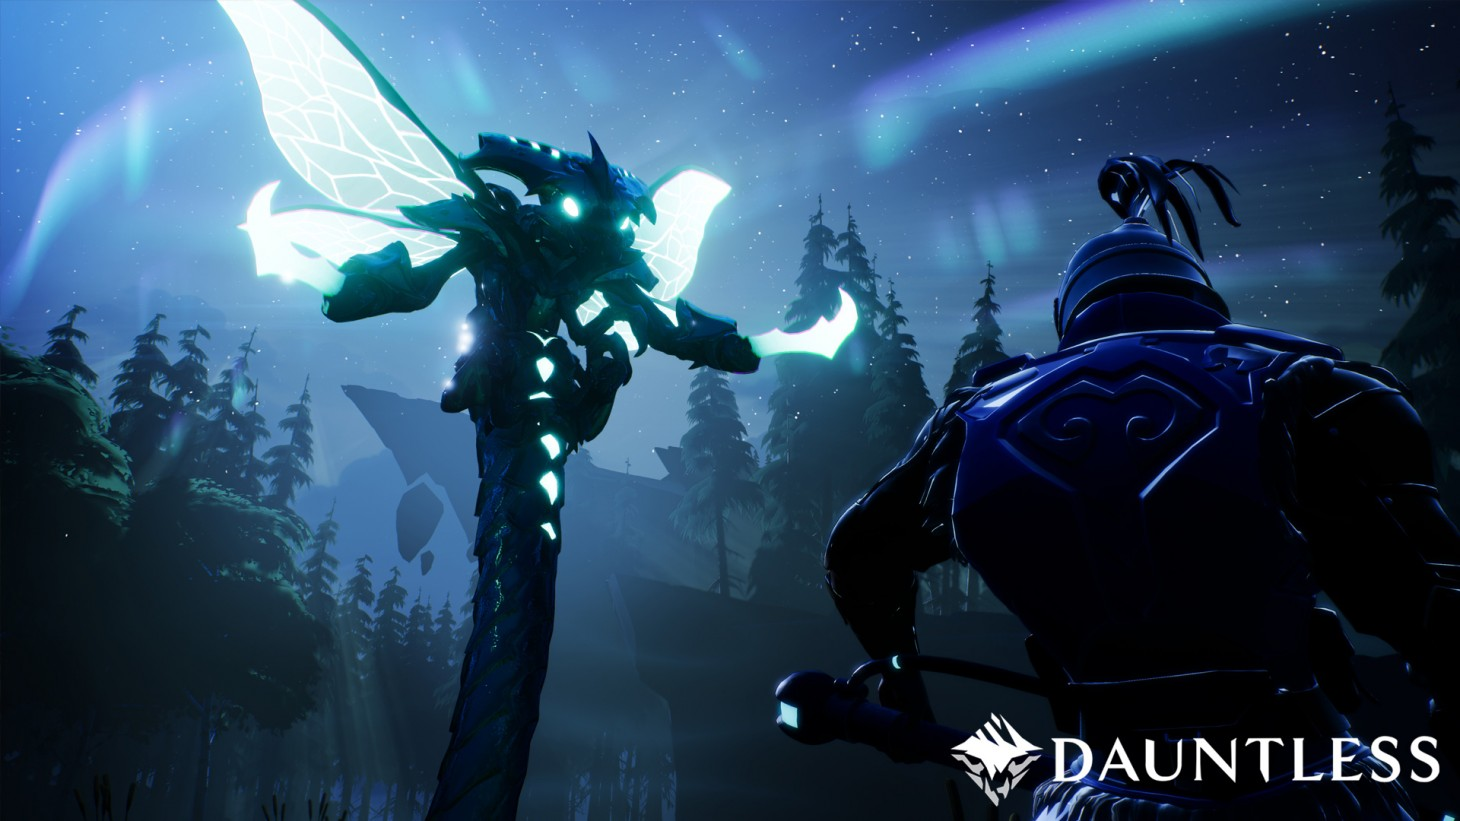 Dauntless Review - A Prosaic Peak - Game Informer